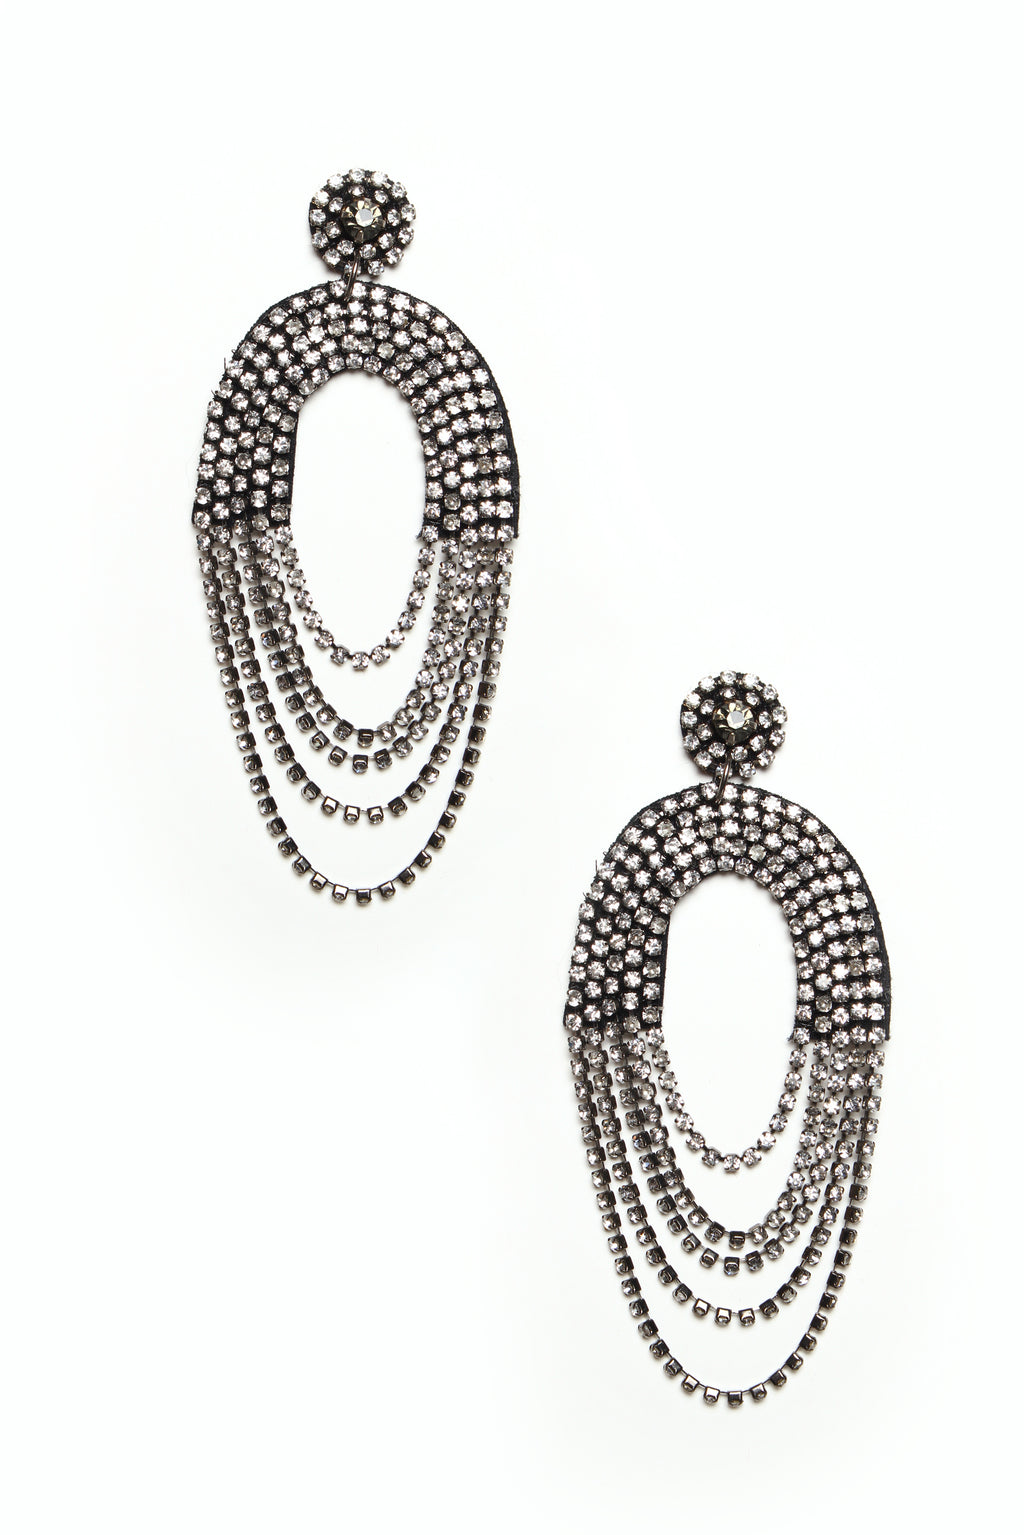 Rhinestone Arch Statement Earrings